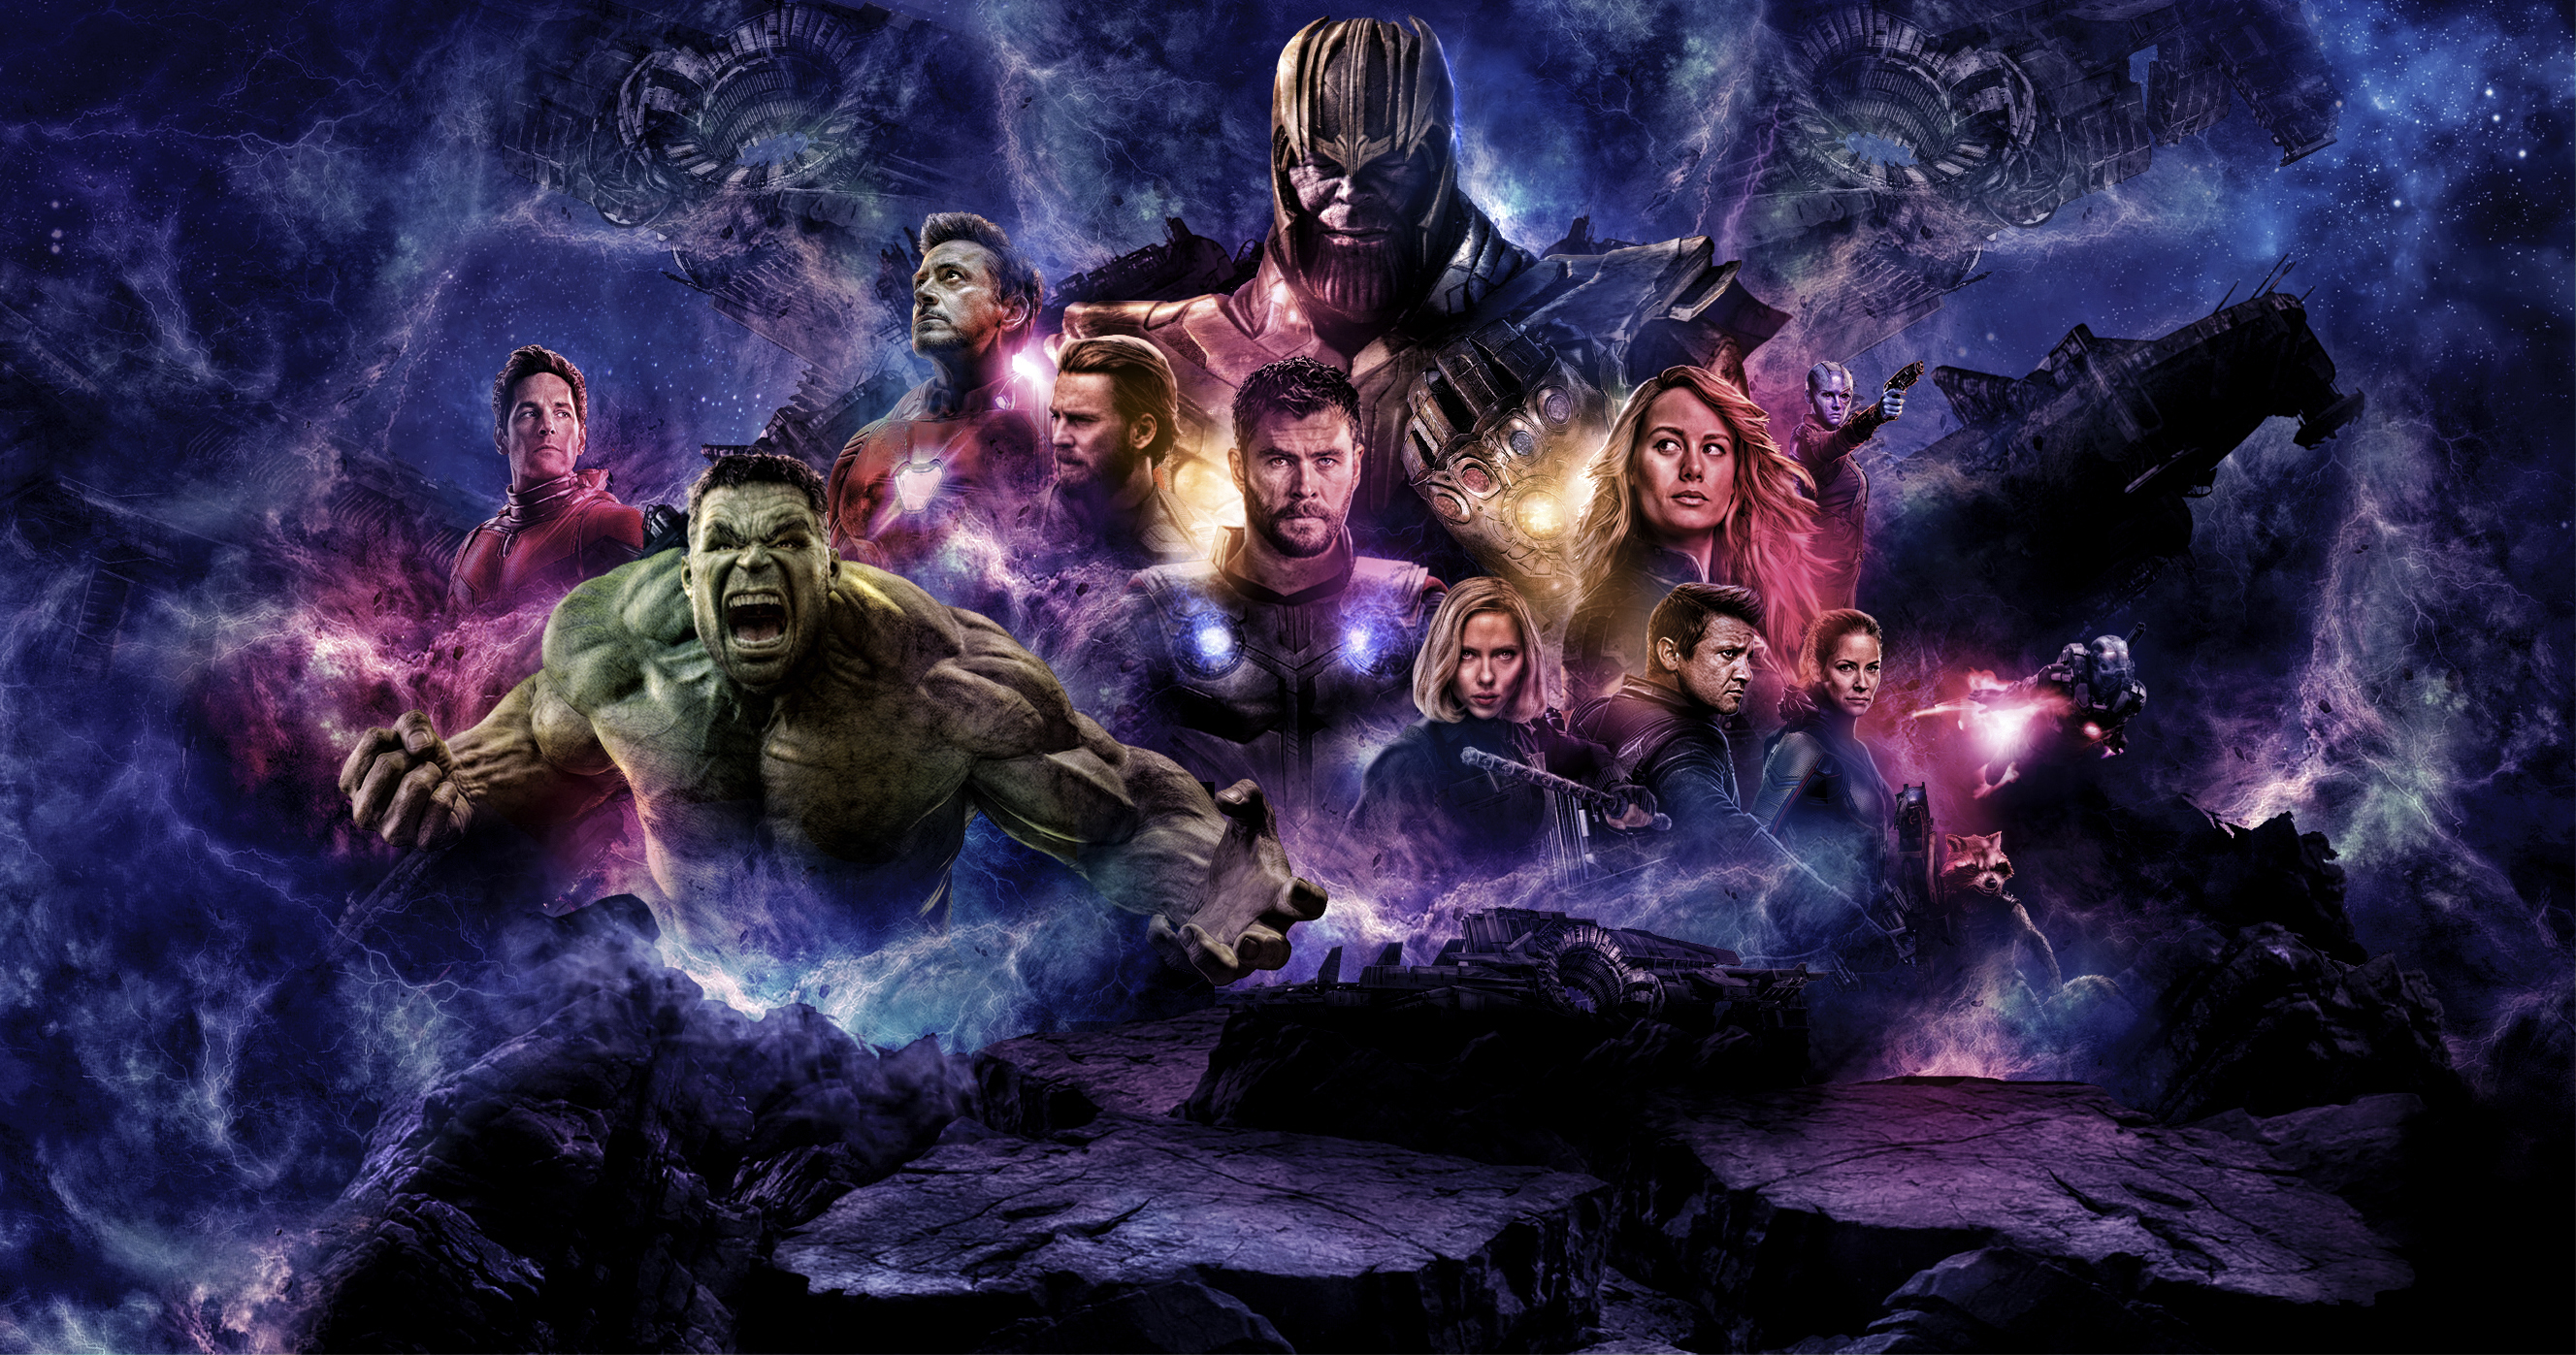 Movie Poster 2019: Avengers 4 2019 Movie Poster, HD Movies, 4k Wallpapers